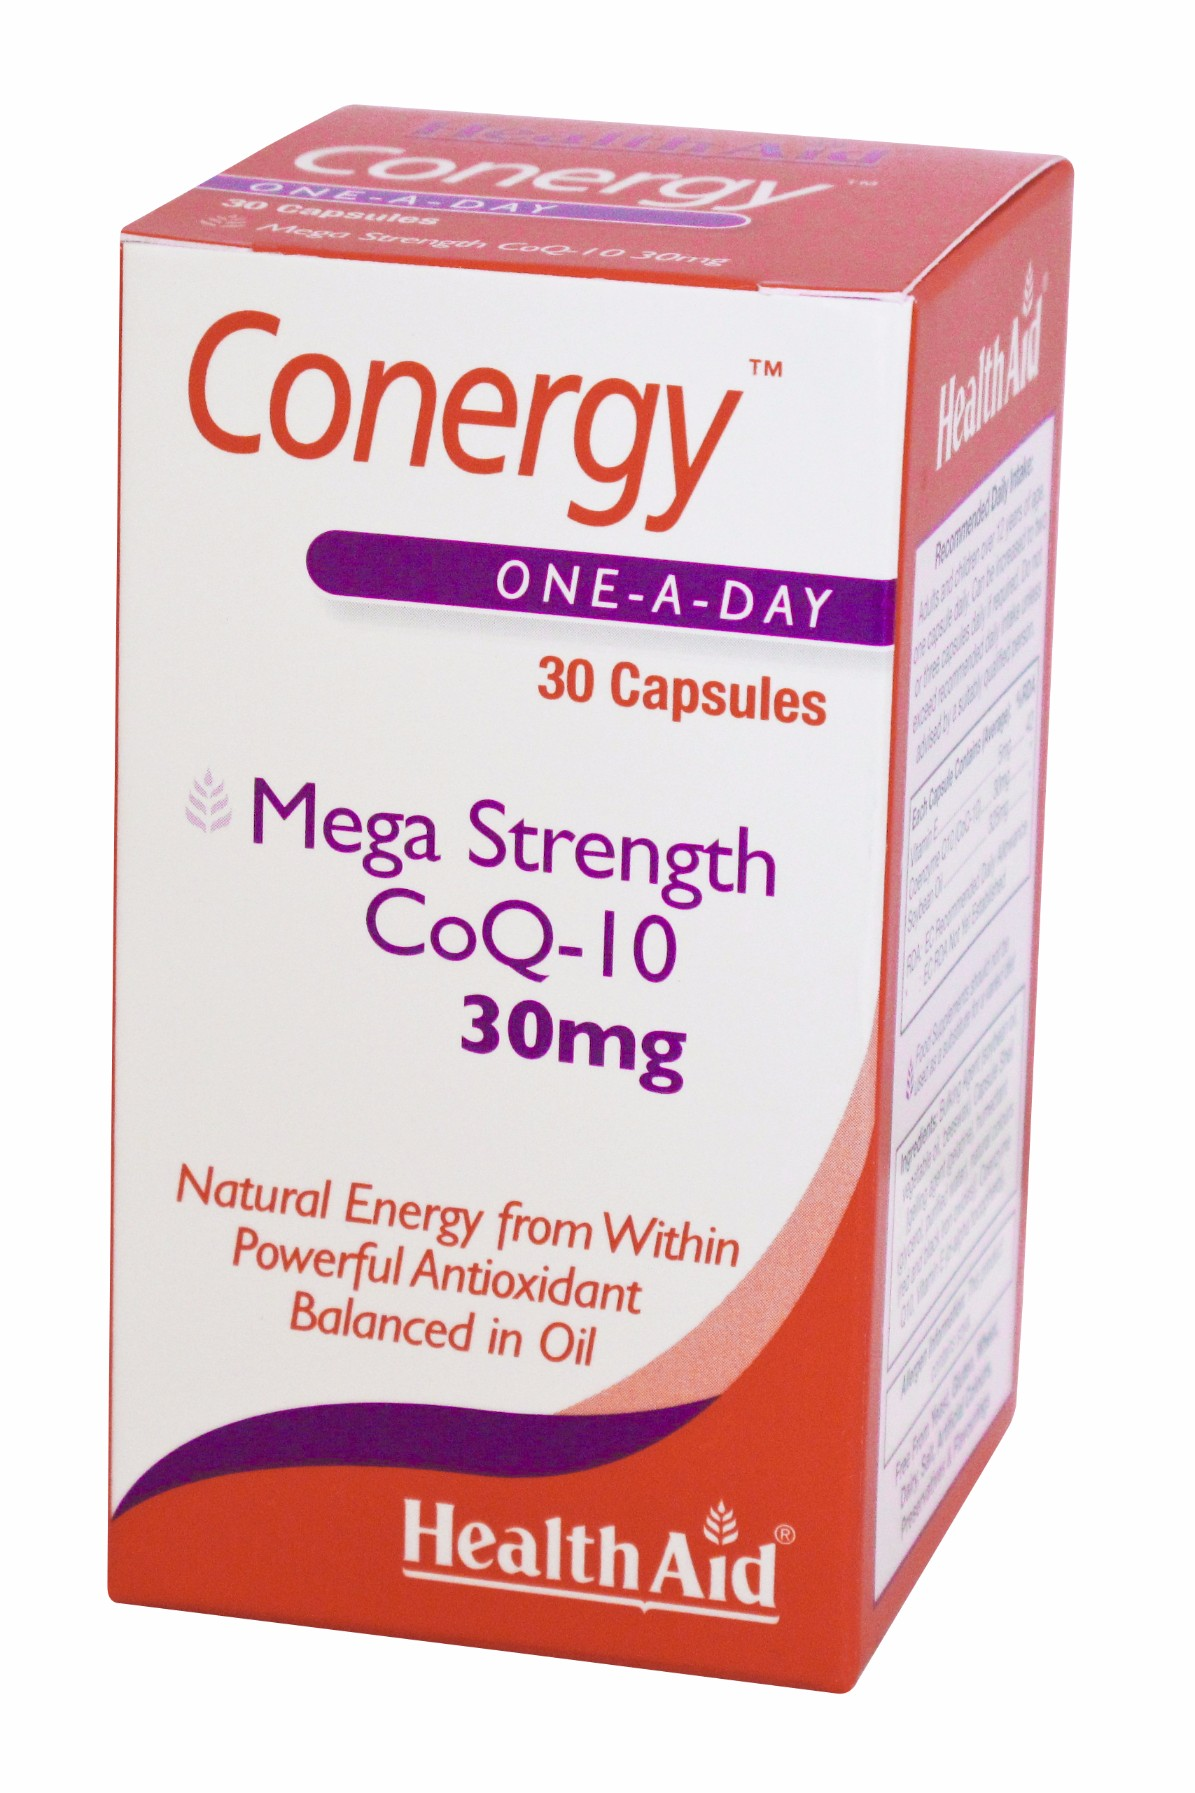 Health Aid Conergy CoQ-10 30mg <br> 30 Capsules